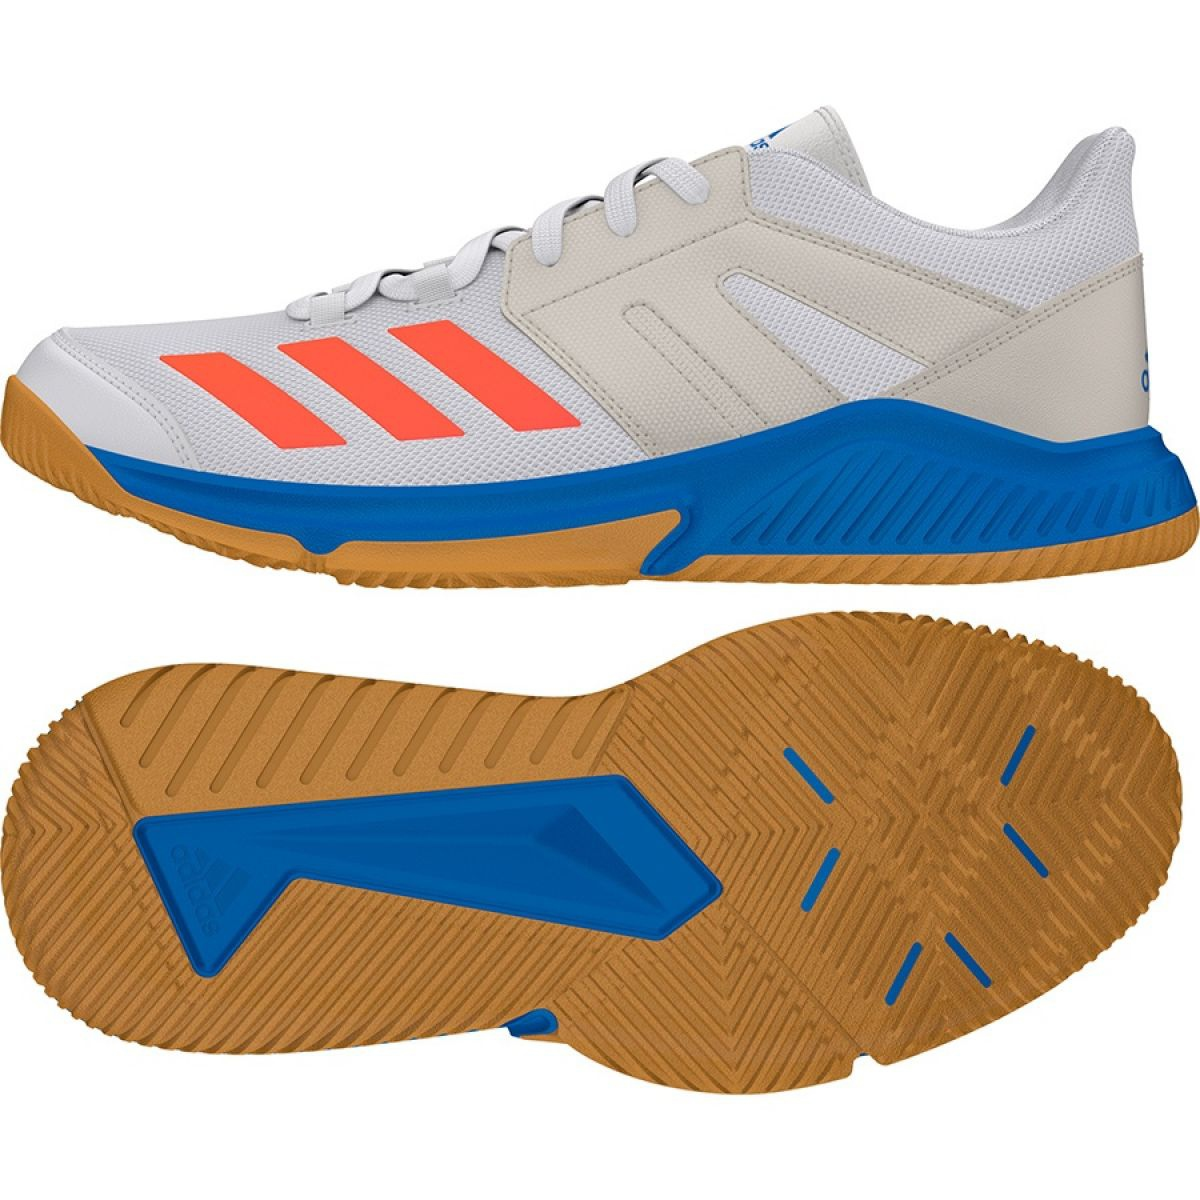 Adidas zapatos Handball Essence M b22589